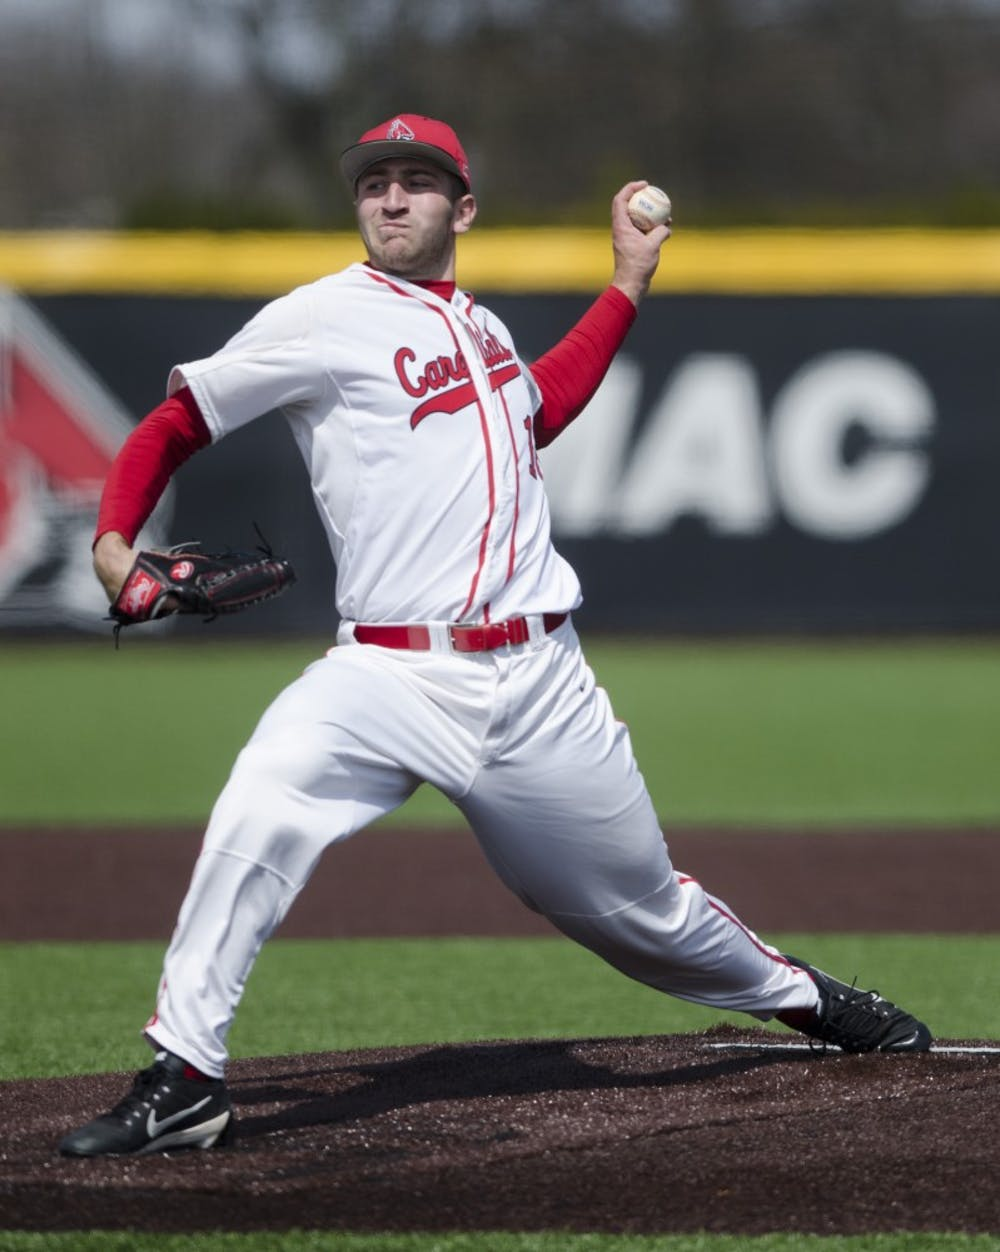 Senior pitcher Kevin Marnon pitches the ball during the game against Ohio University on April 2 at the First Merchants Ballpark Complex. Ball State lost 10-0, bringing the Cardinals losing streak to eight games in a row. Emma Rogers // DN